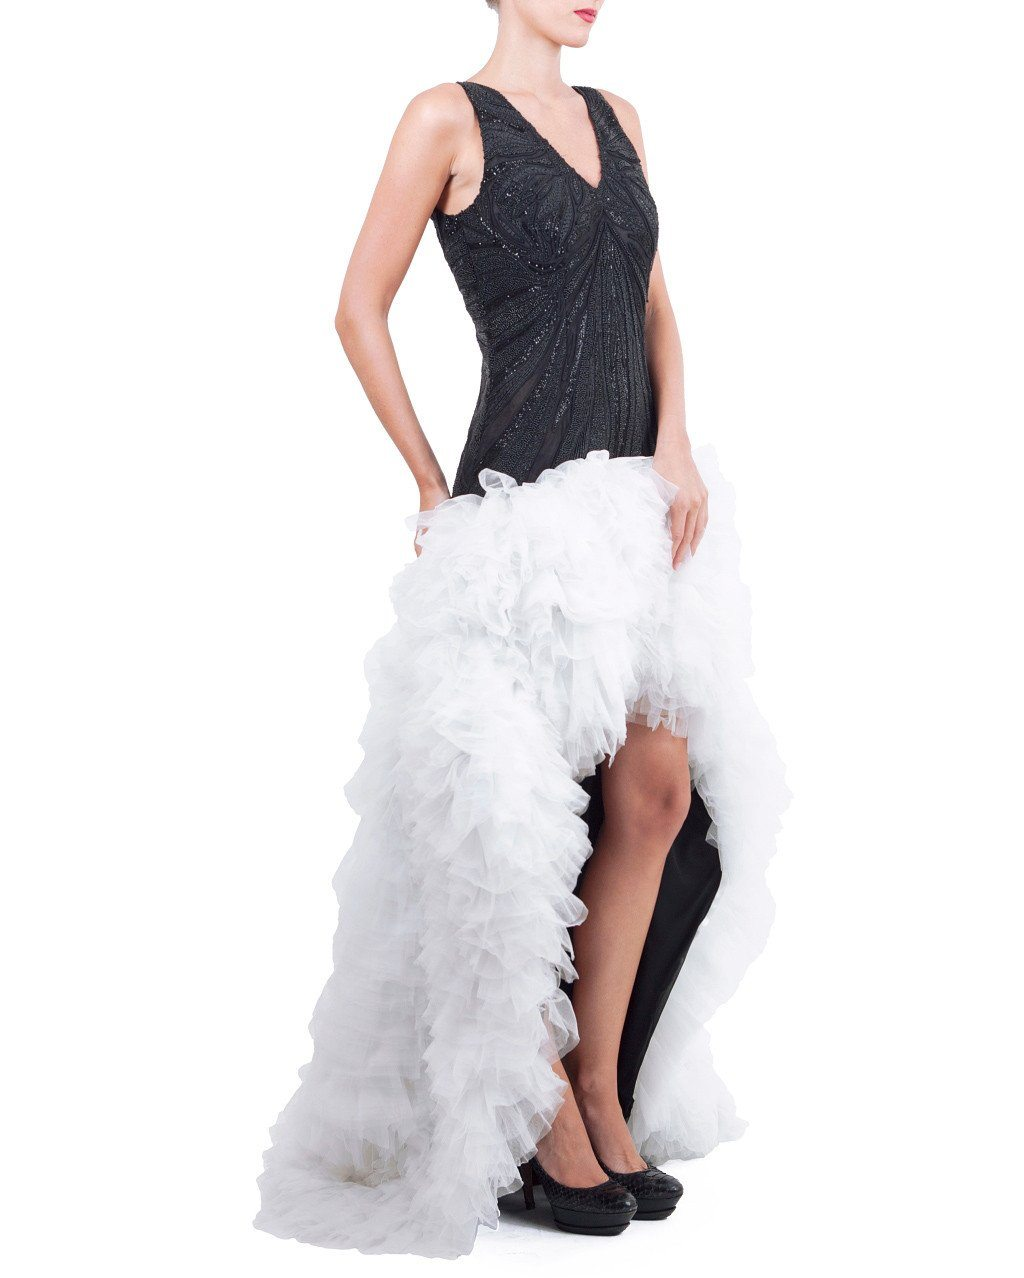 Beaded Color Block Ruffle Gown - Zardoze - Covetella Dress Rentals